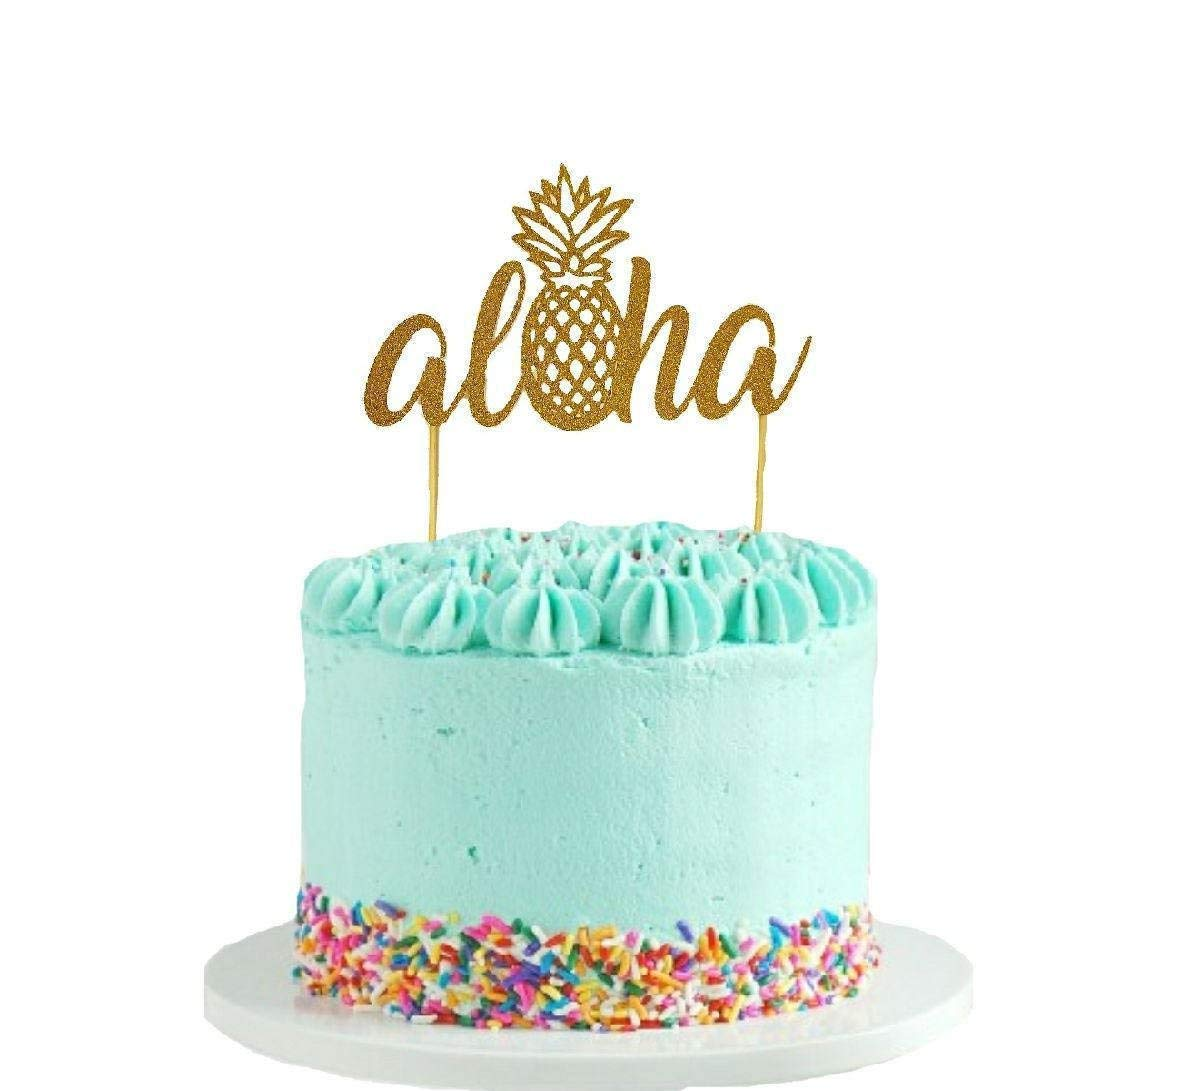 Outstanding Amazon Com Aloha Cake Topper Aloha Cake Topper Tropical Party Funny Birthday Cards Online Alyptdamsfinfo